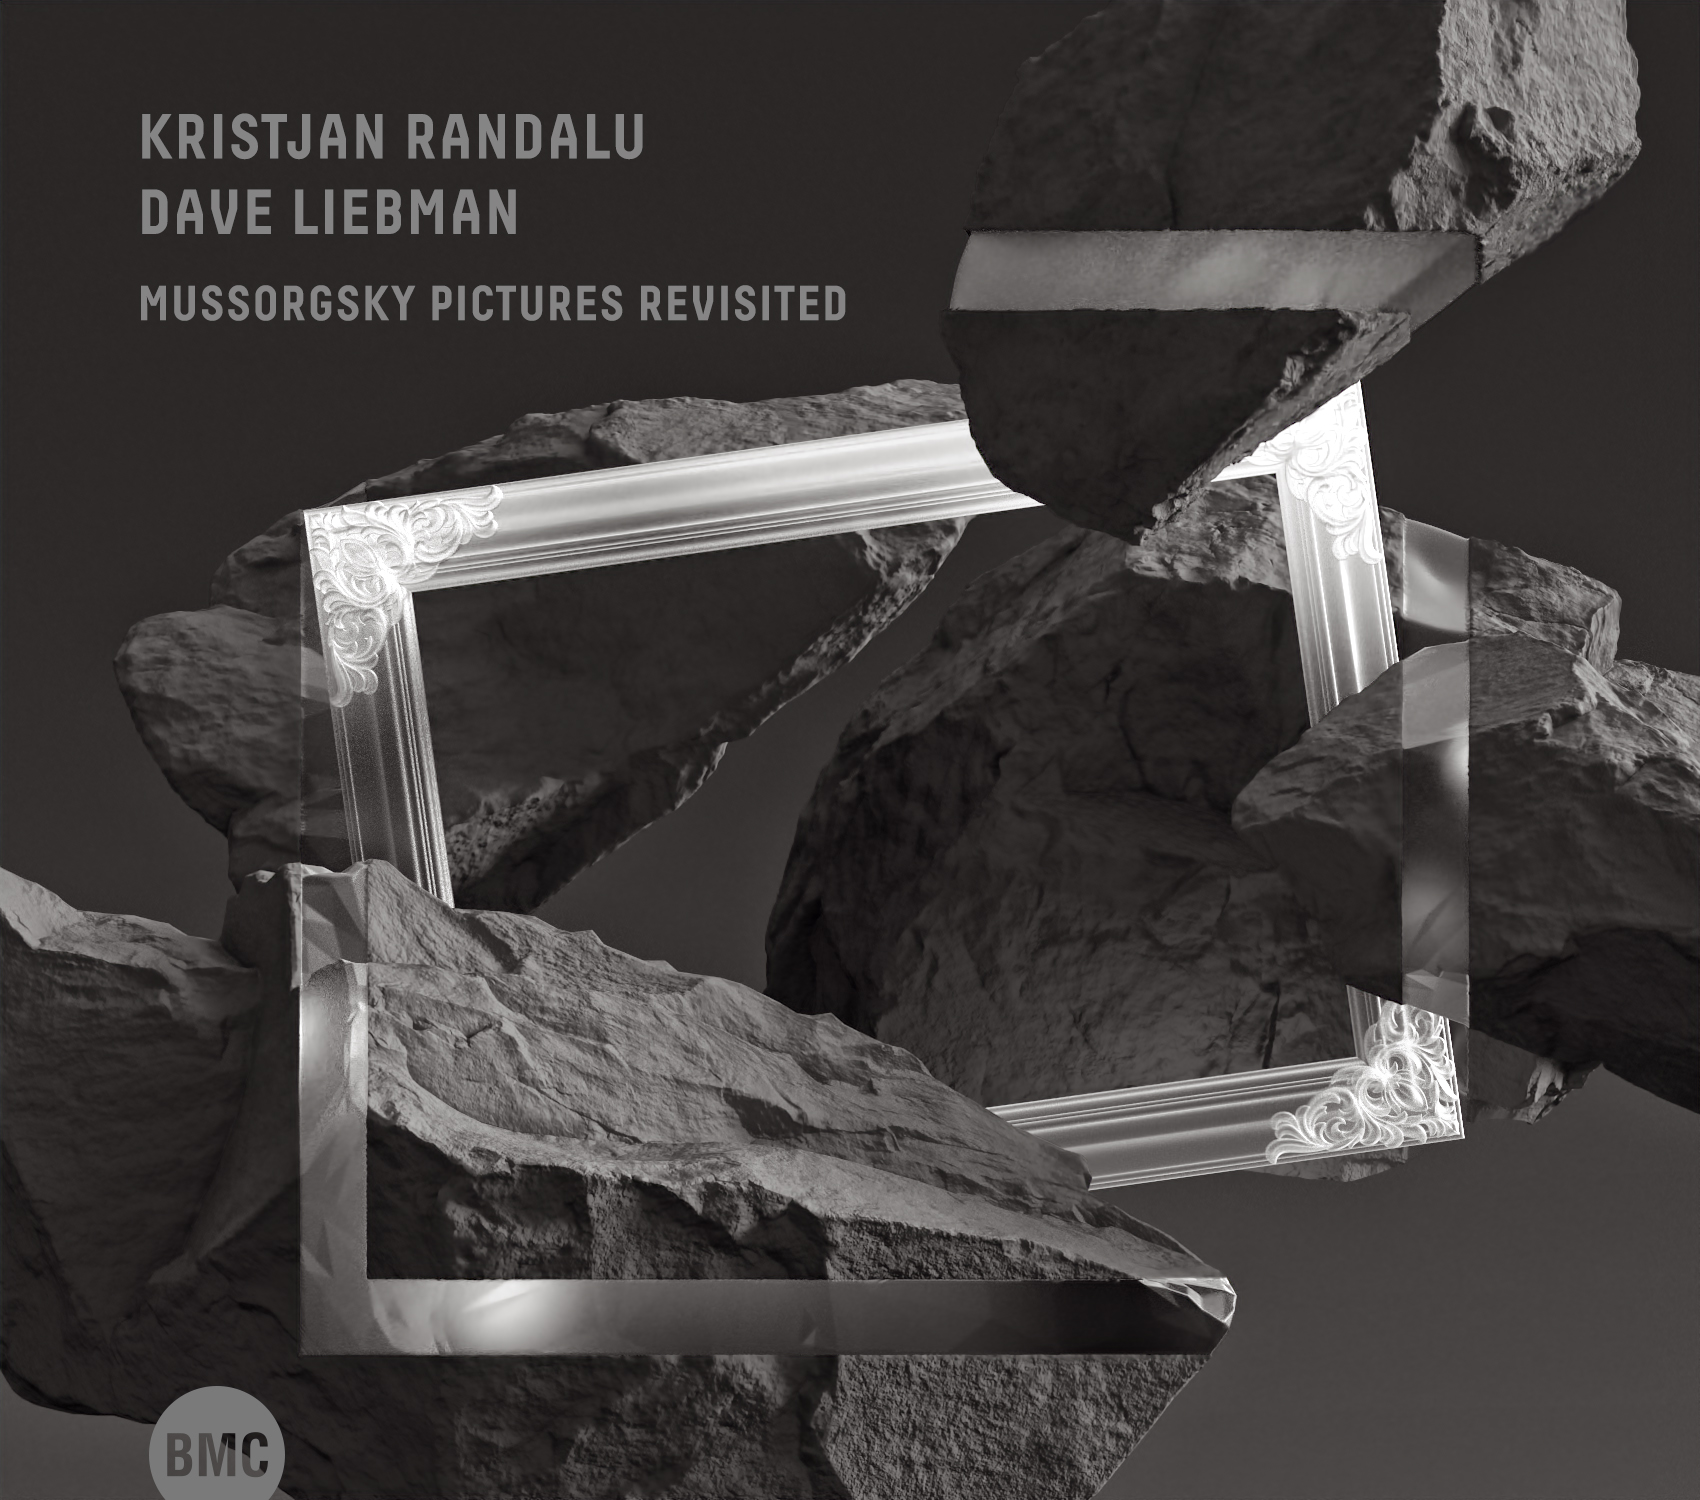 Mussorgsky Pictures Revisited